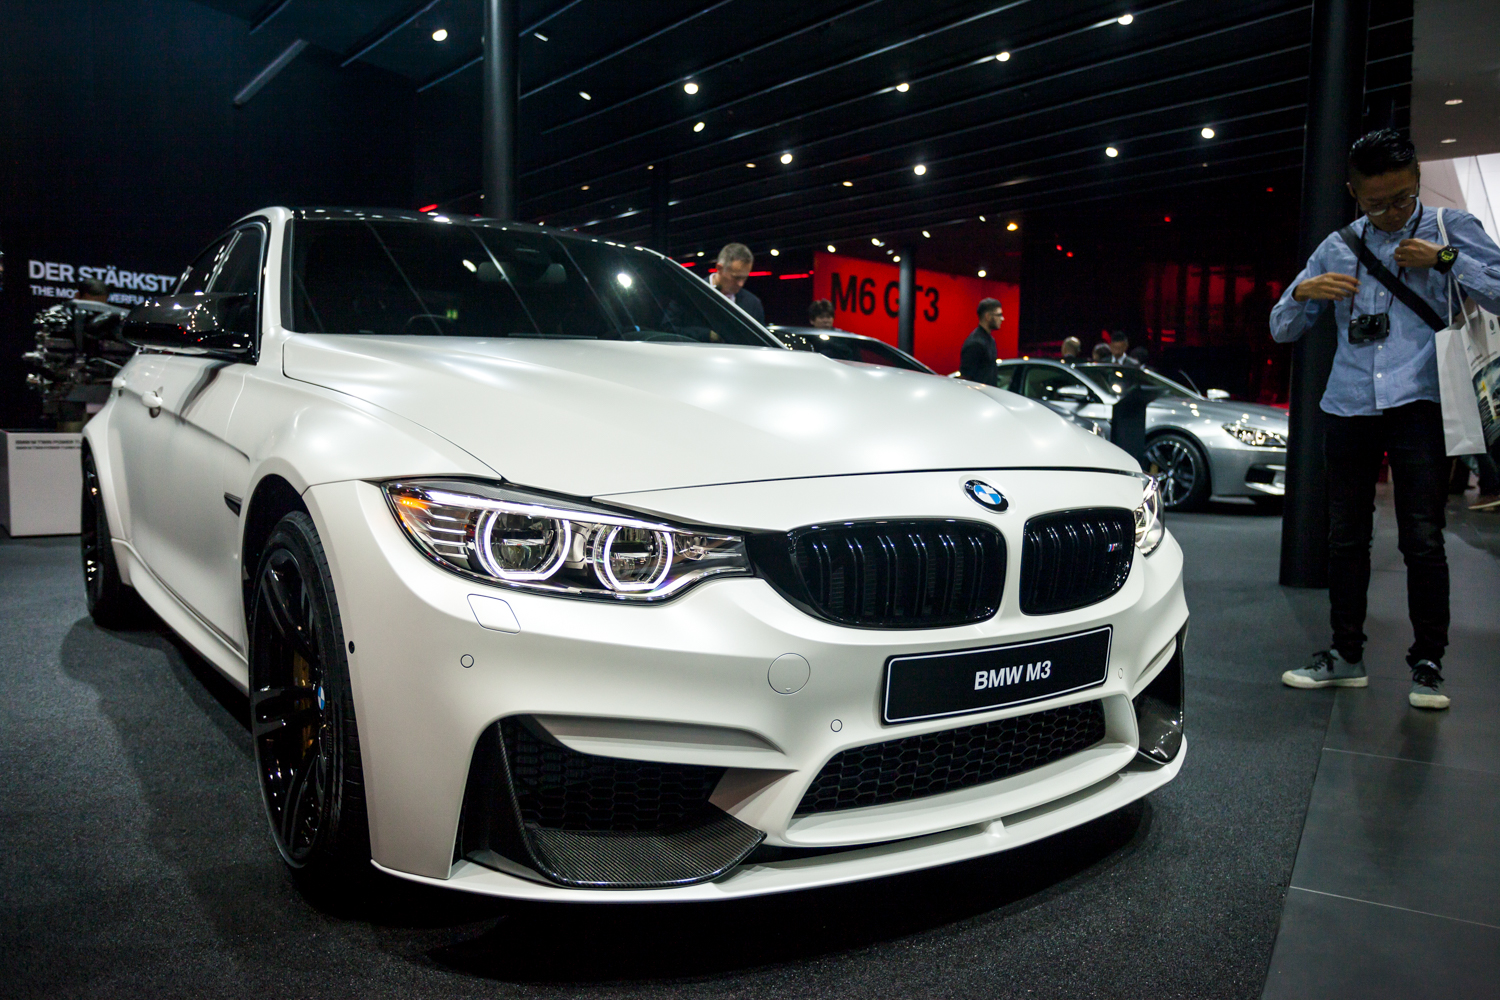 iaa 2015 bmw m3 facelift. Black Bedroom Furniture Sets. Home Design Ideas